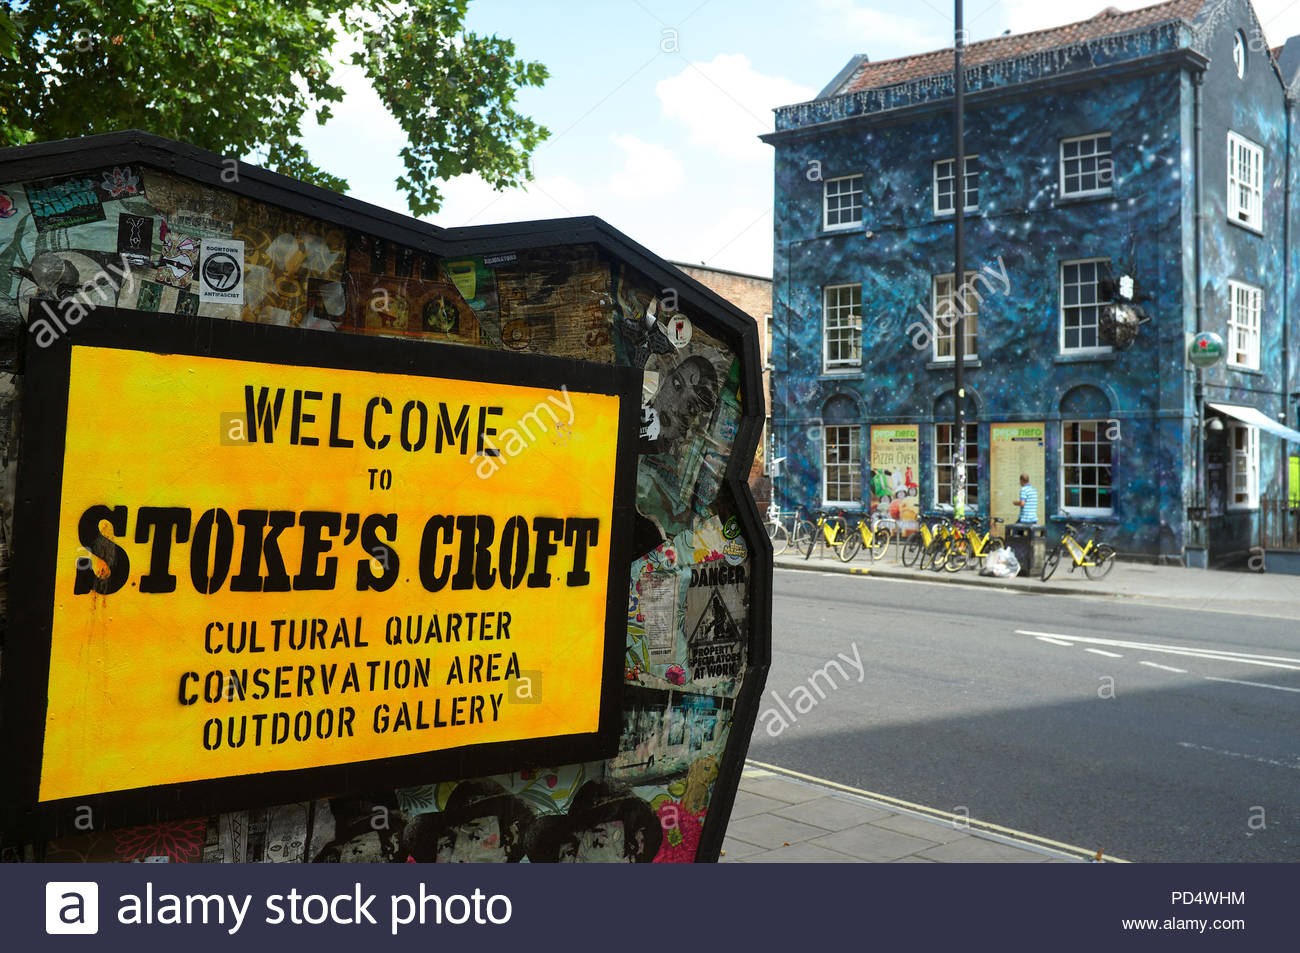 Welcome to Stoke's Croft - unofficial sign in the creative counter-culture area of Bristol, UK. - Stock Image